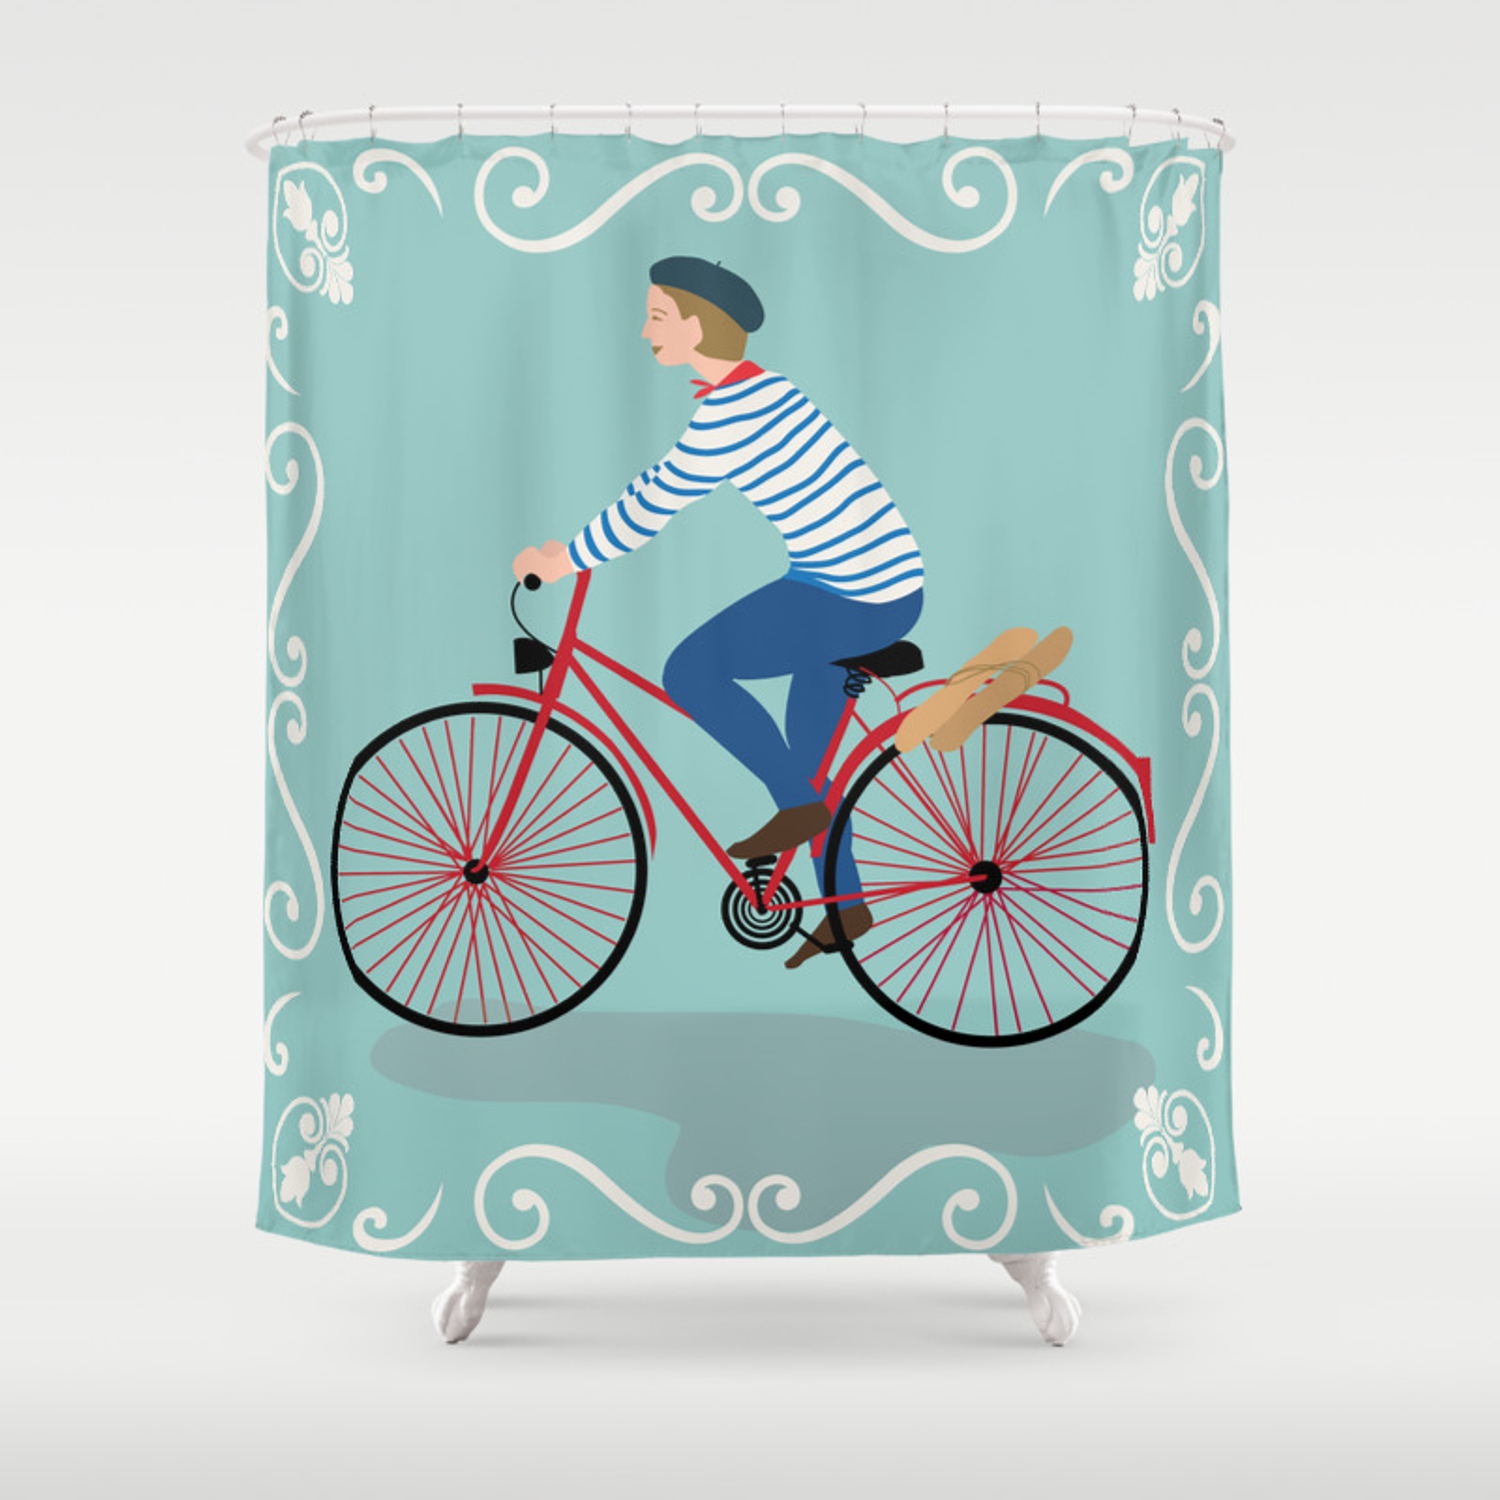 Vintage Style Frenchman On A Bicycle With Baguette Art Print Shower Curtain